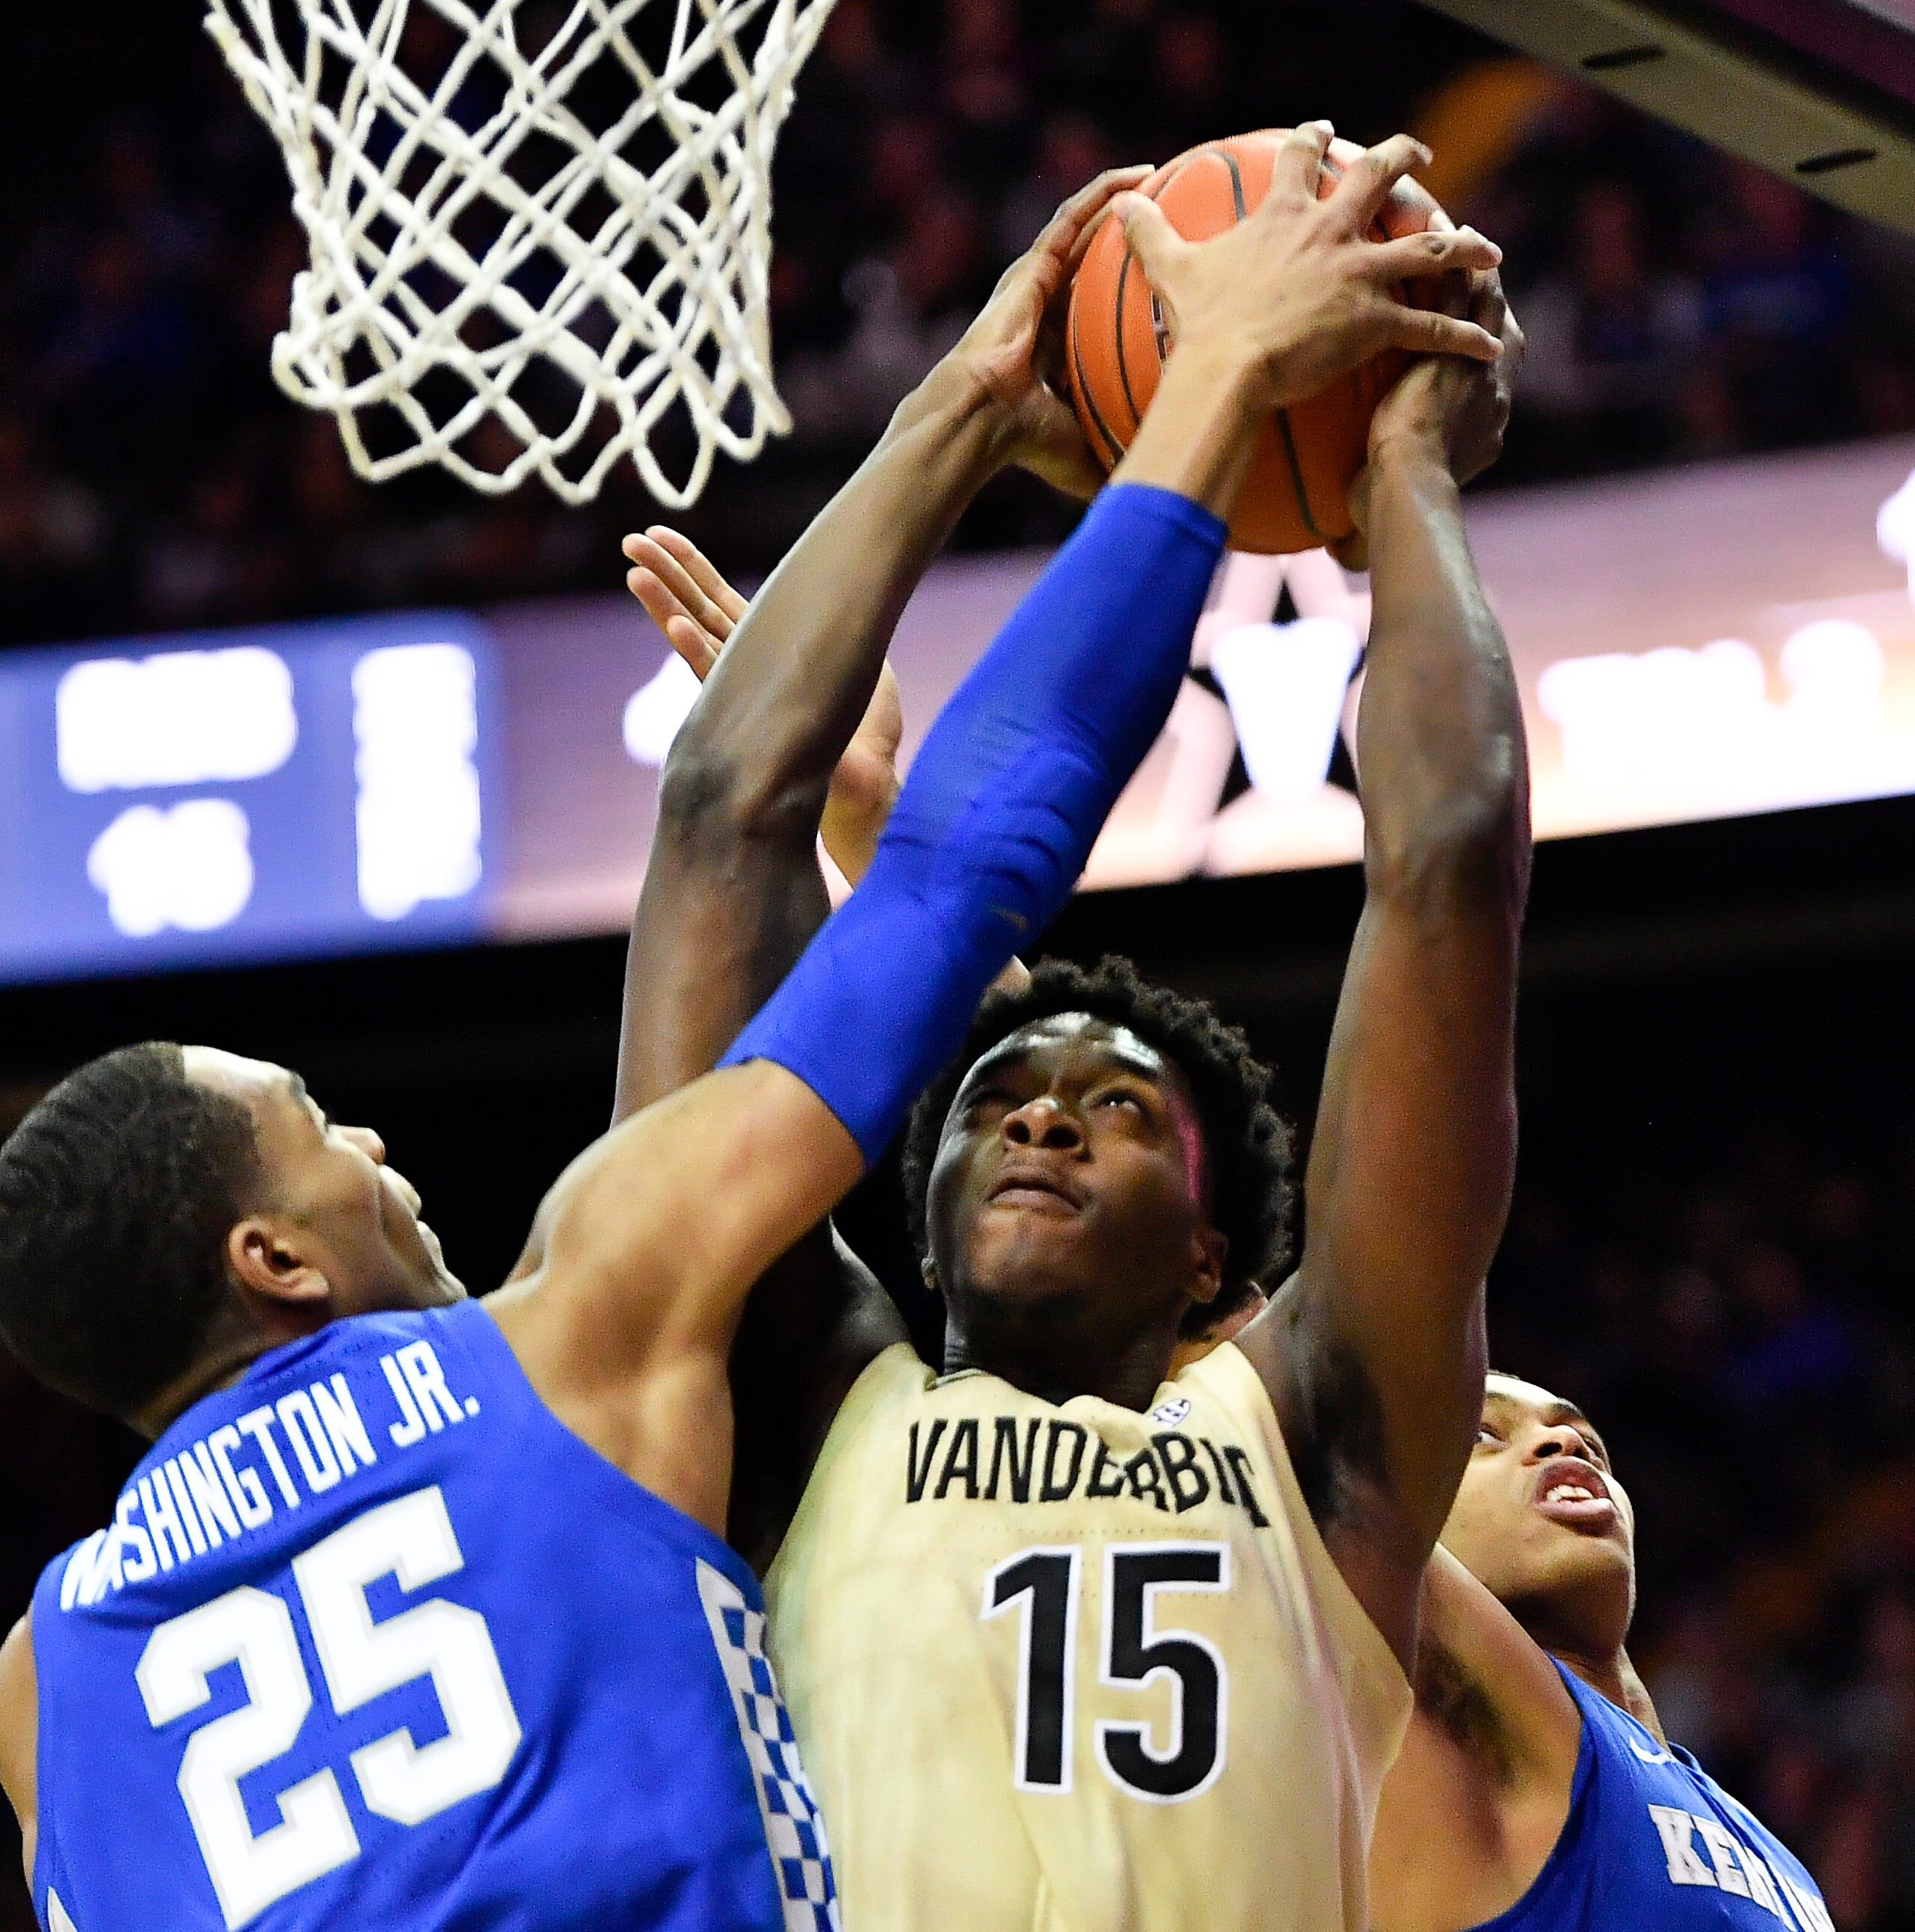 Kentucky basketball vs. Vanderbilt was a contender vs. a clown show